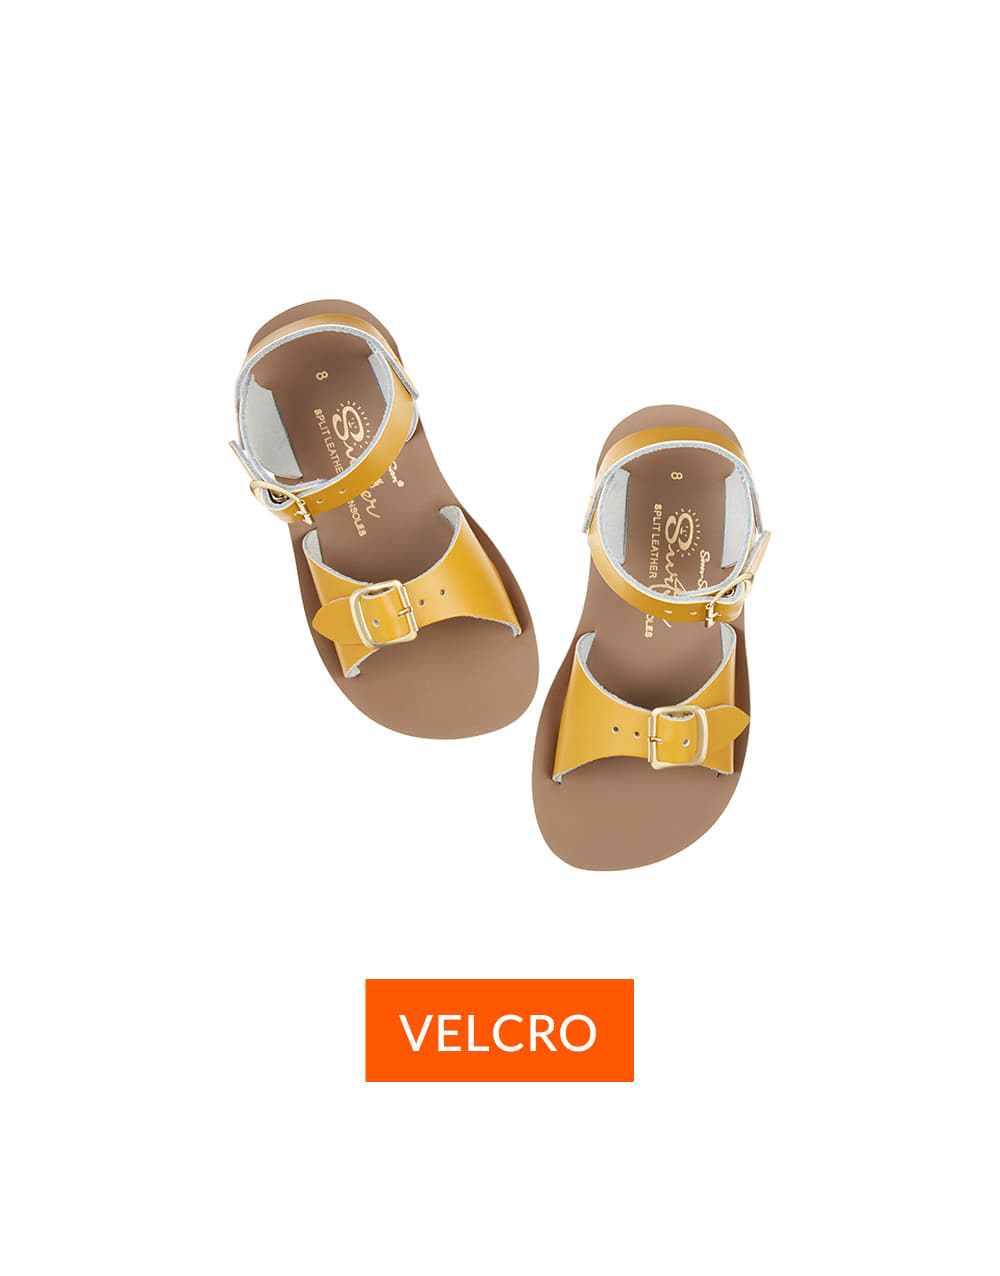 SALT-WATER SANDAL  CHILD VELCRO SURFER  Mustard